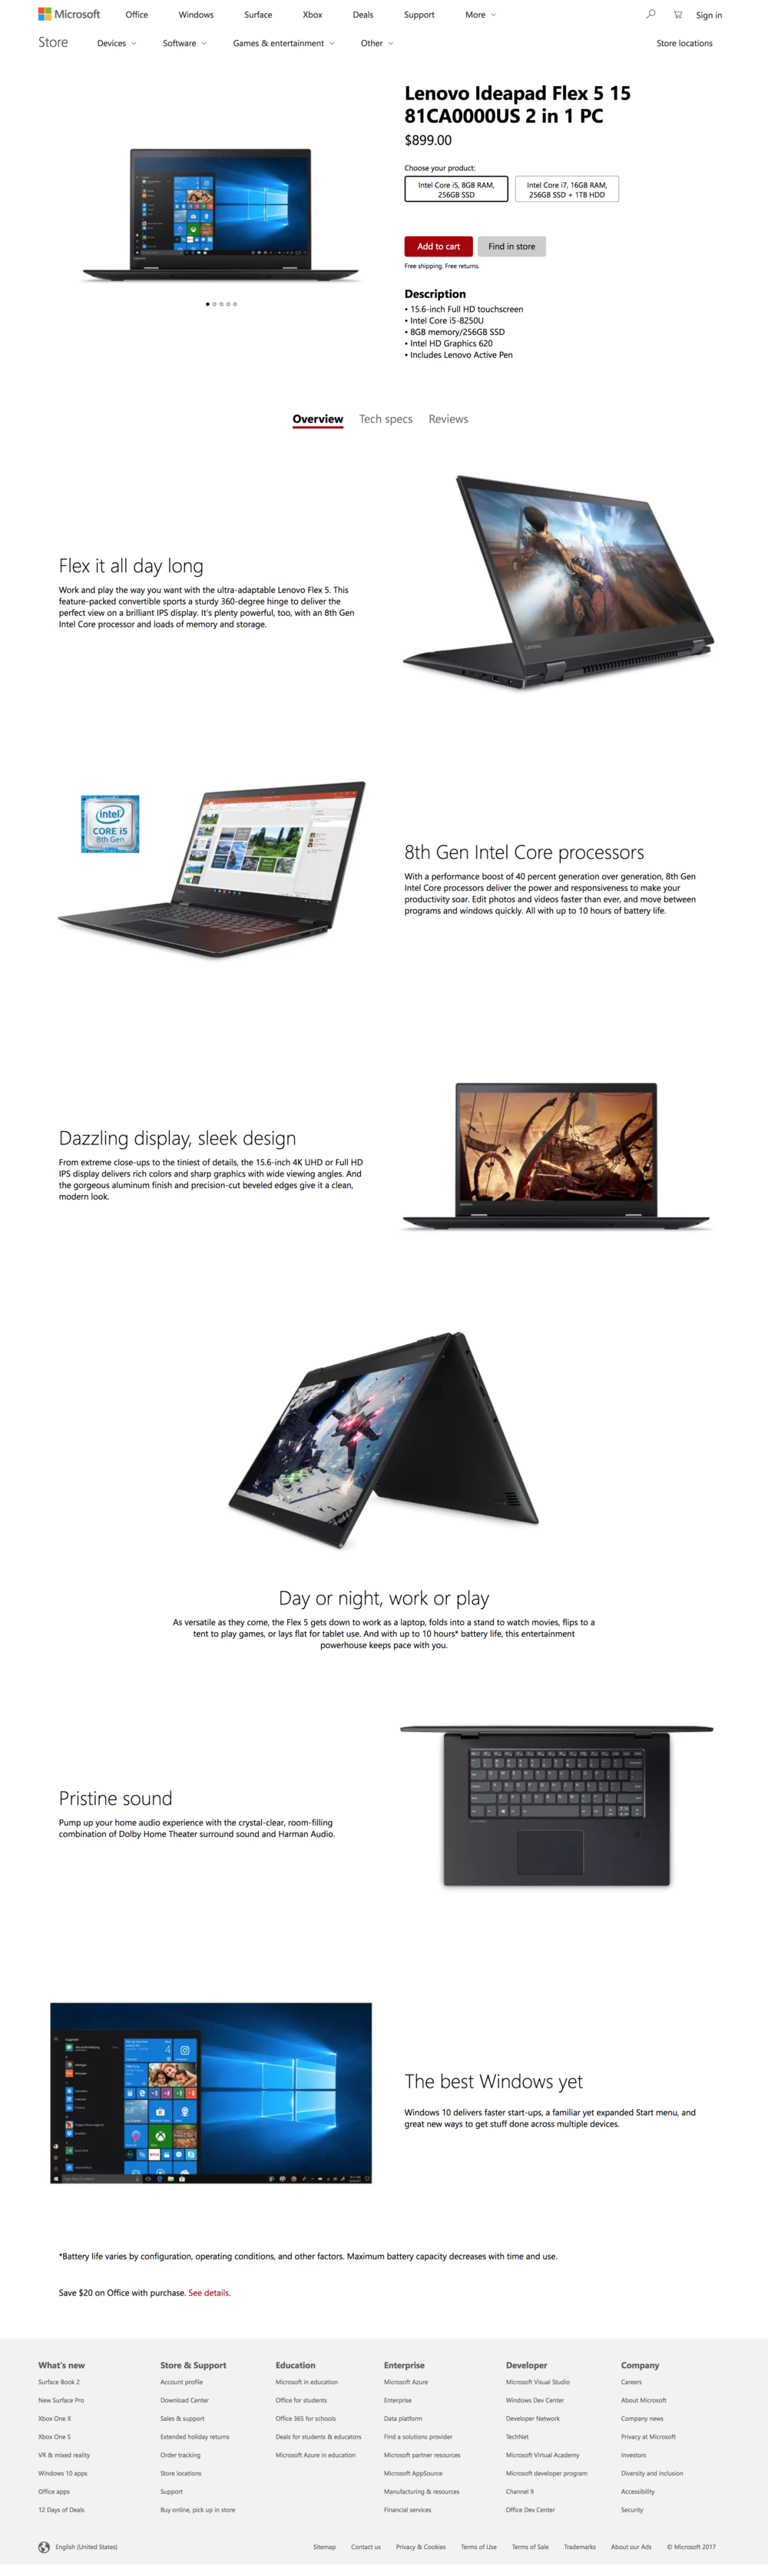 screencapture-microsoft-en-us-store-d-lenovo-ideapad-flex-5-15-2-in-1-pc-8pskdqhww0jw-1R24-1512941917205.png